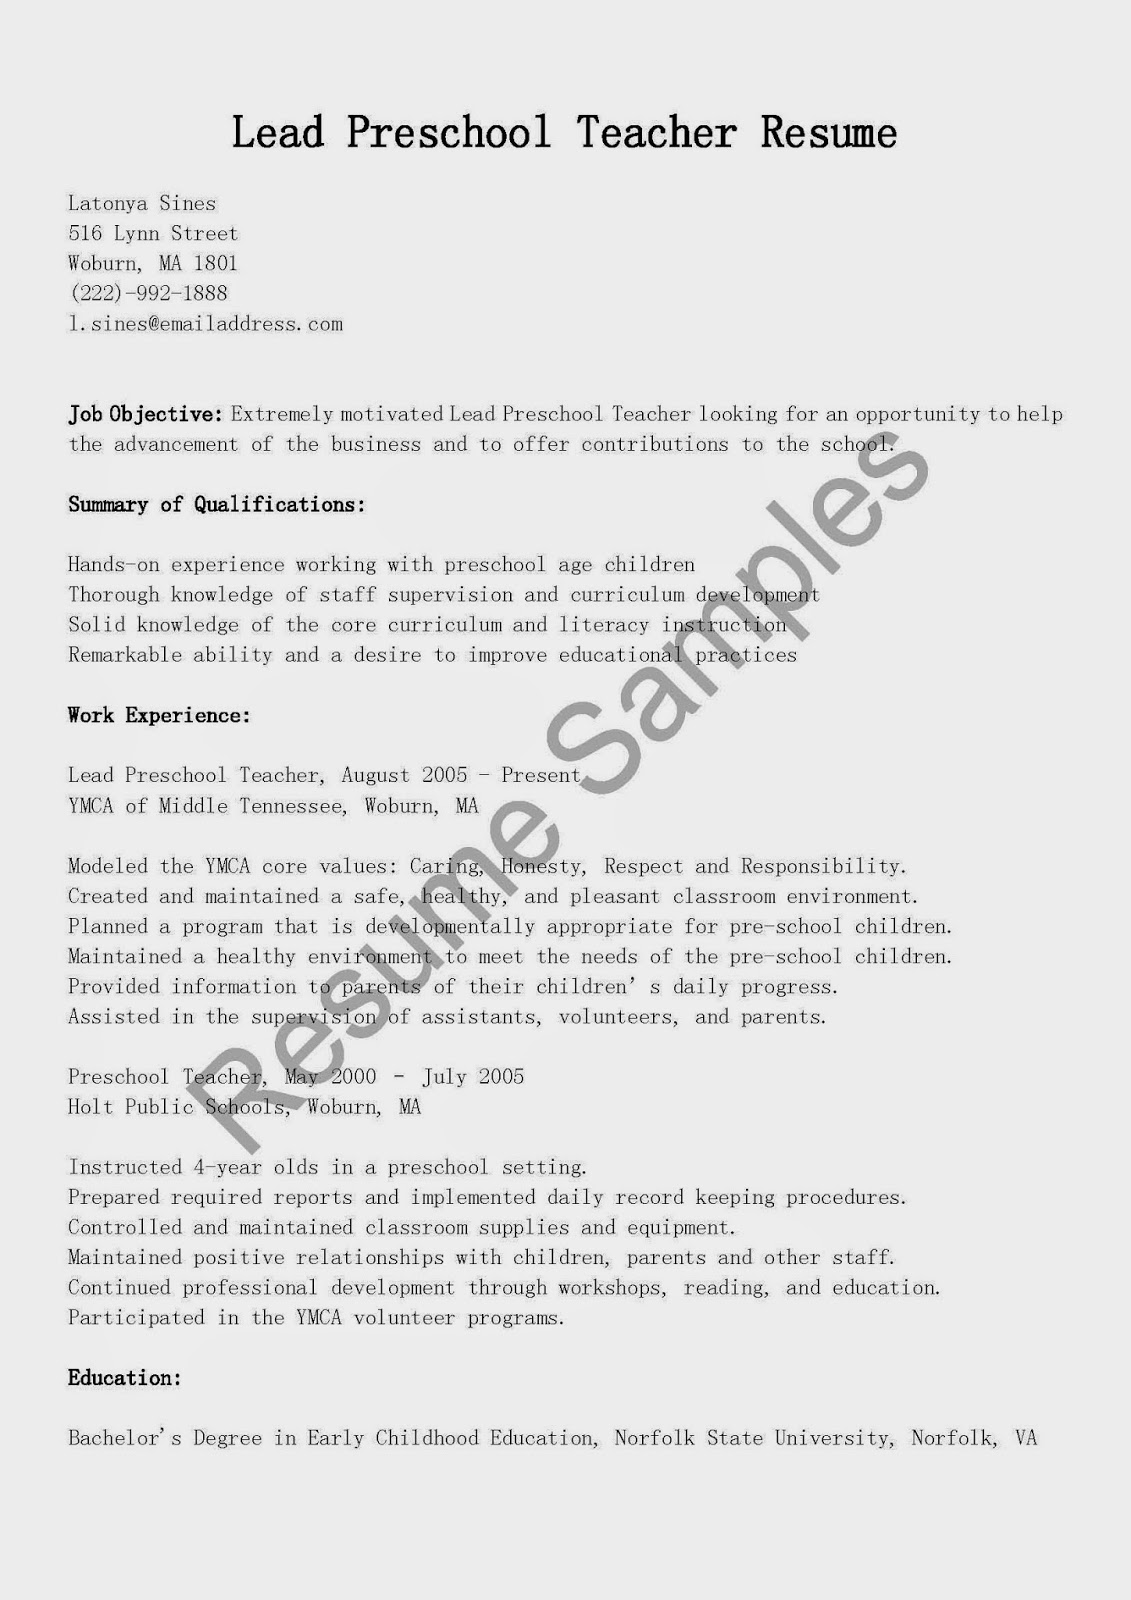 Resumes For Educators Breakupus Engaging Outstanding Resume Designs You  Wish You Thought Of Hongkiat With Lovely  Resume Objective For Teacher